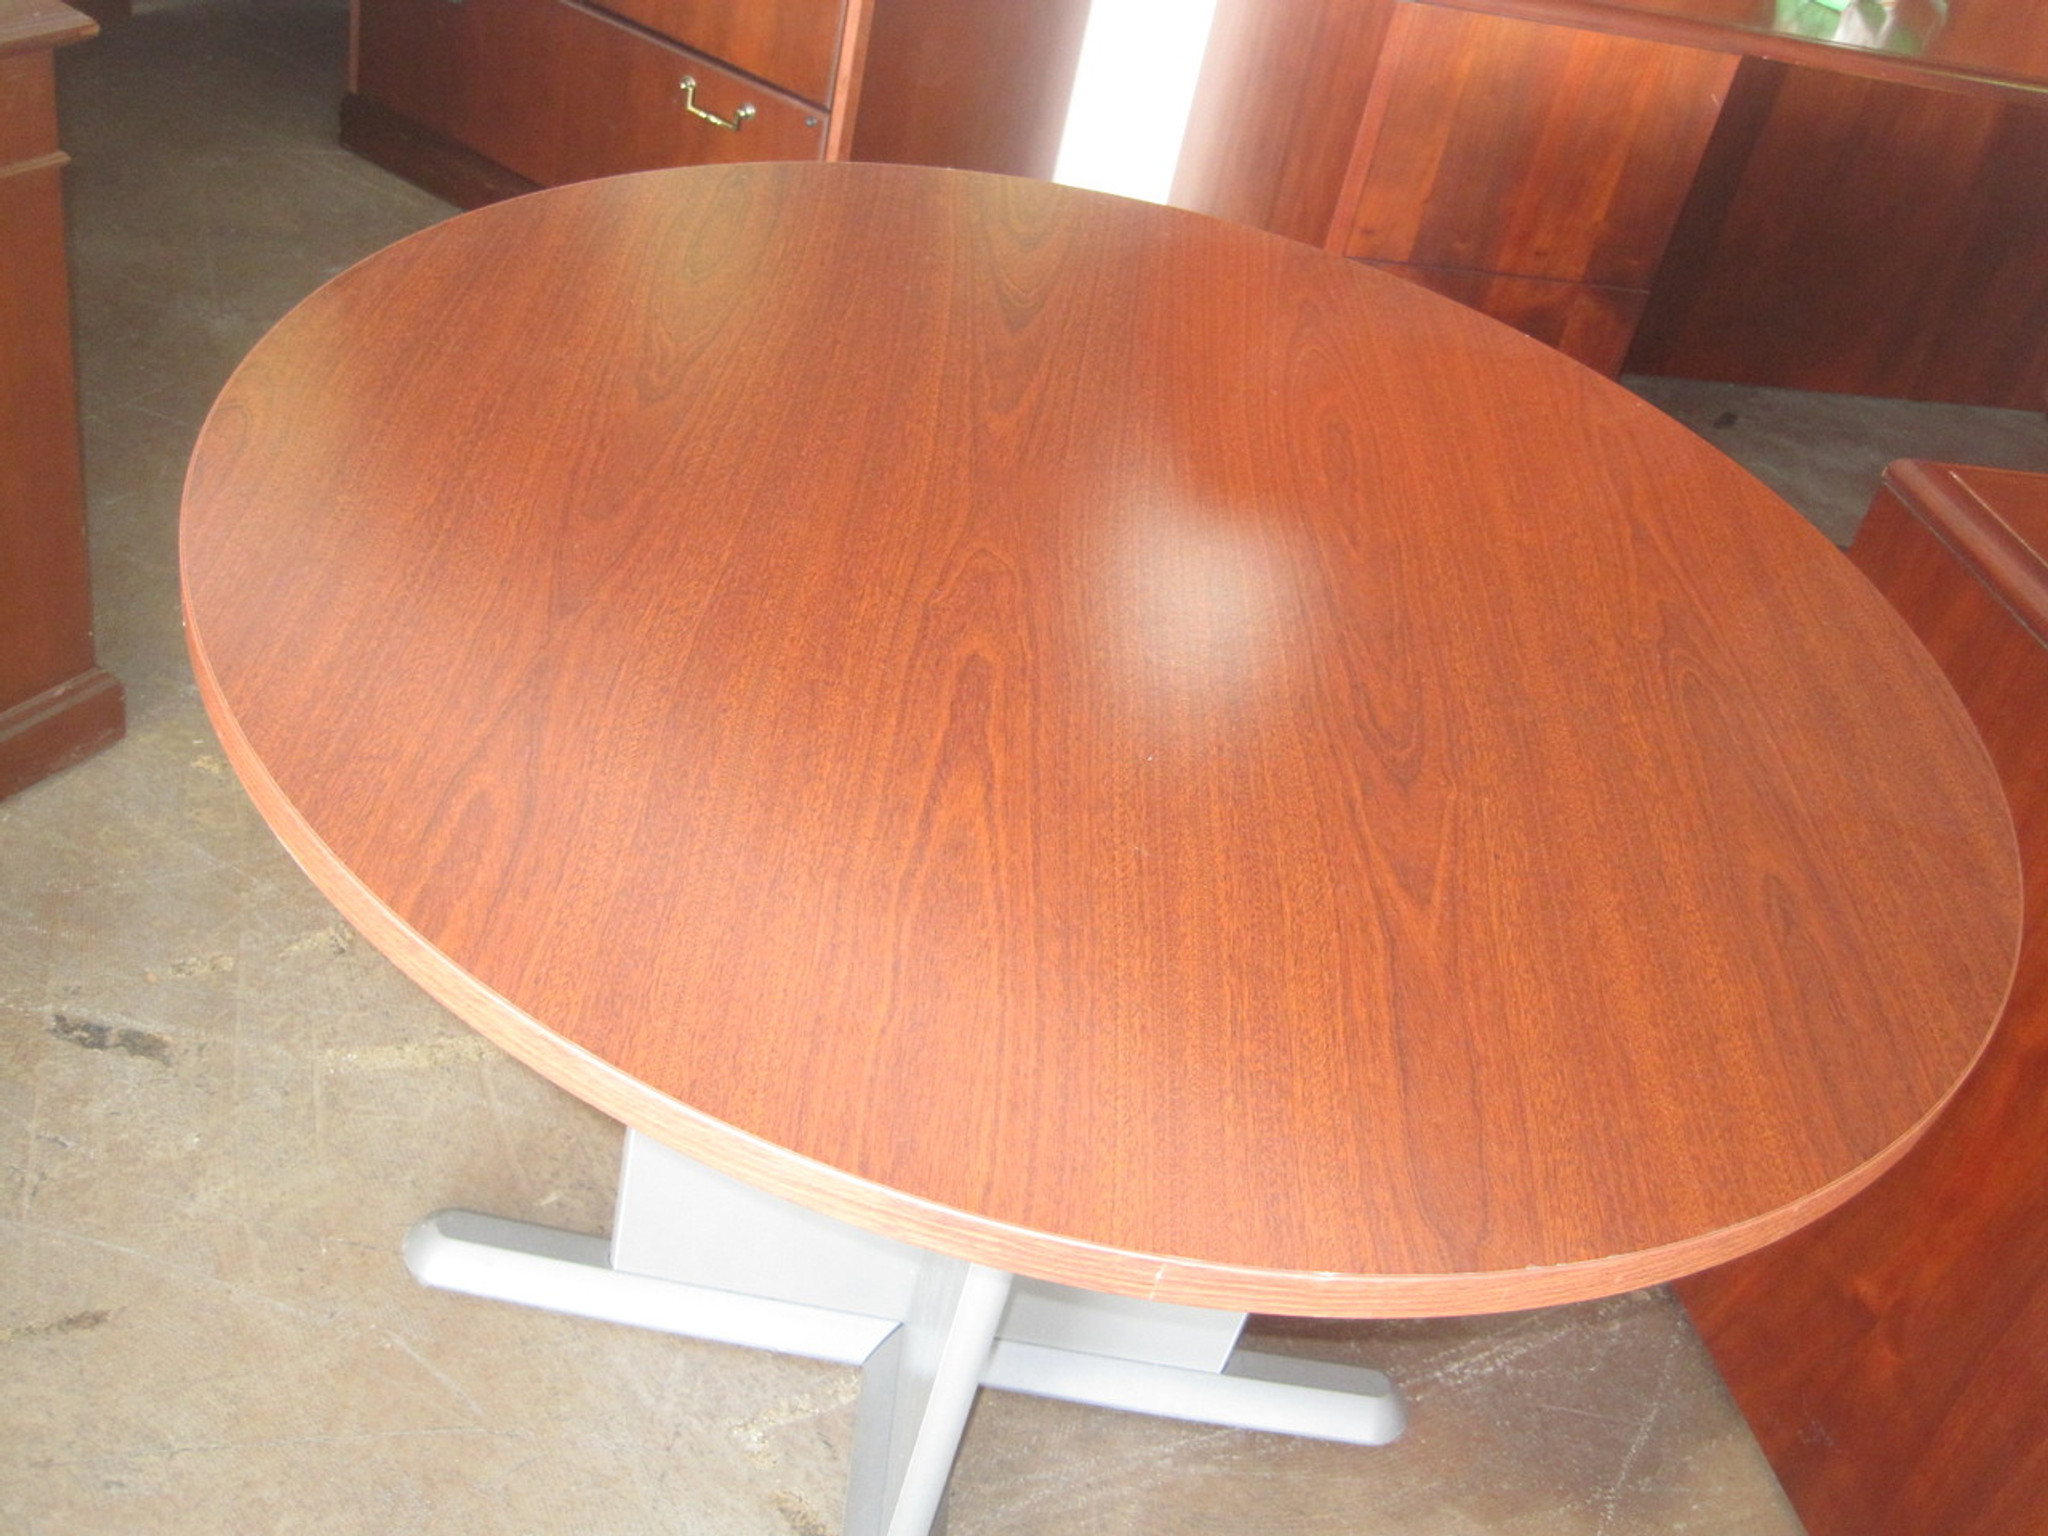 Round Conference Table Orlando Office Furniture - 36 round conference table